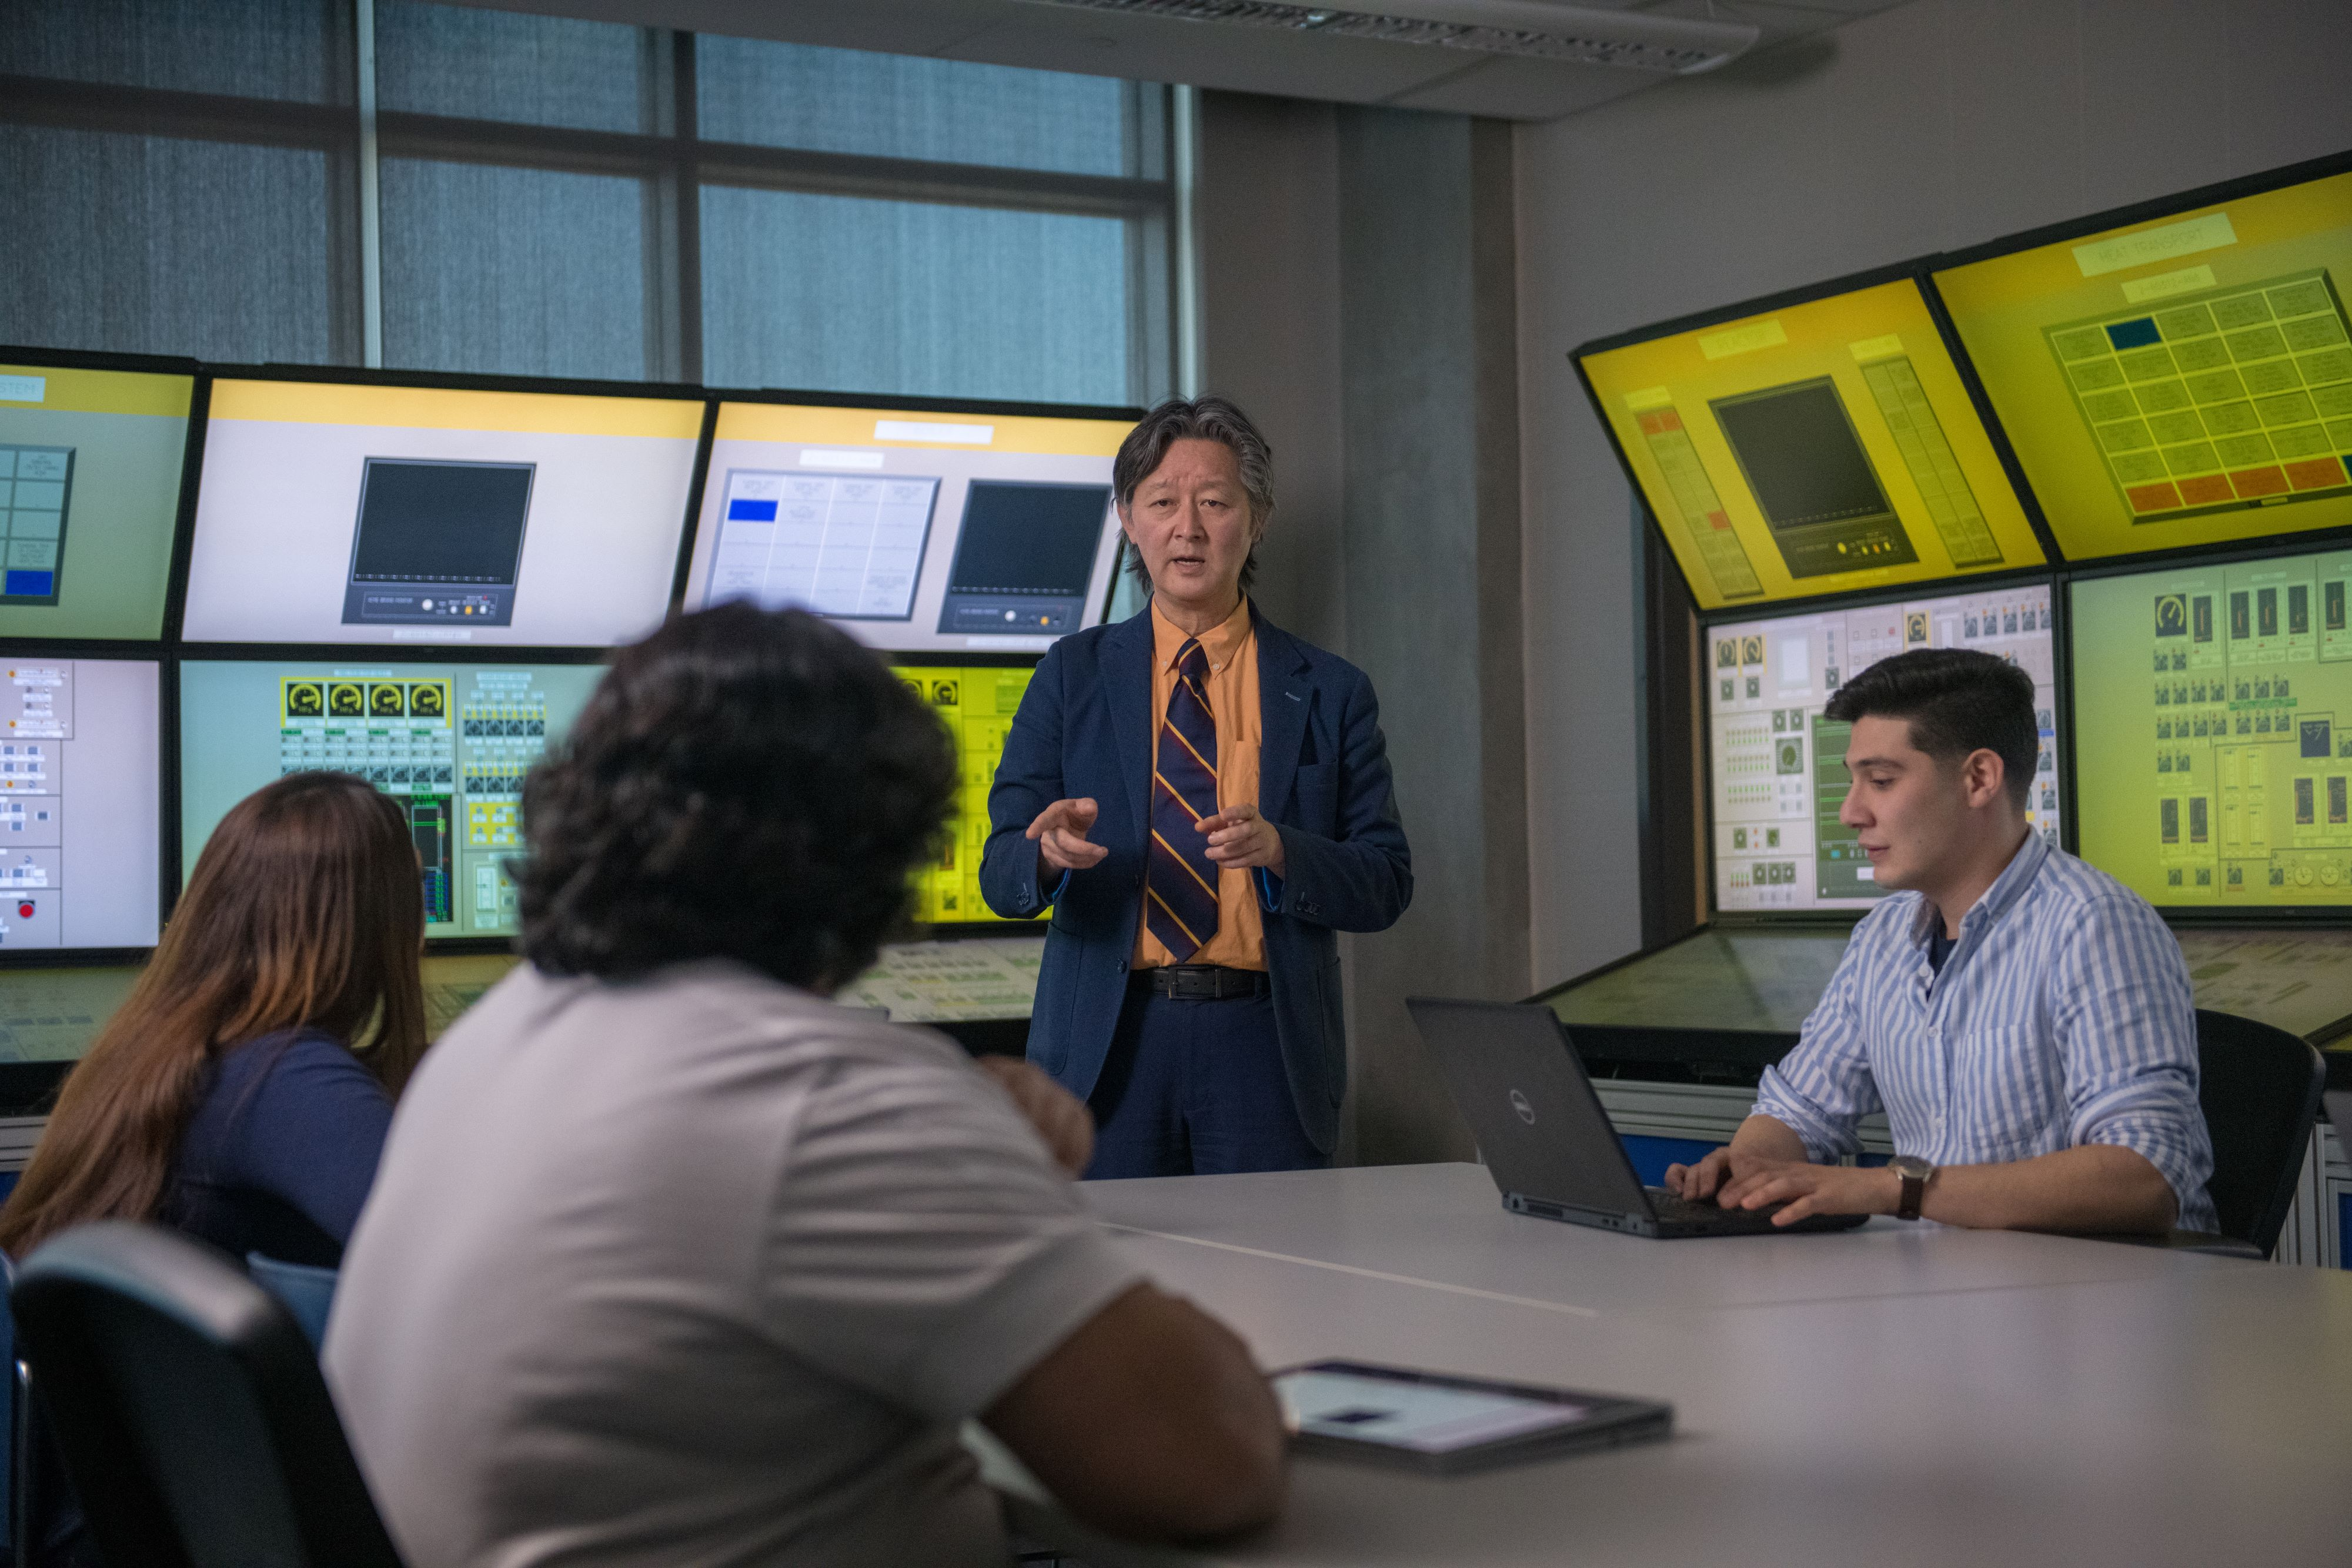 Dr. Akira Tokuhiro (speaking), Dean, Faculty of Energy Systems and Nuclear Science, Ontario Tech University.